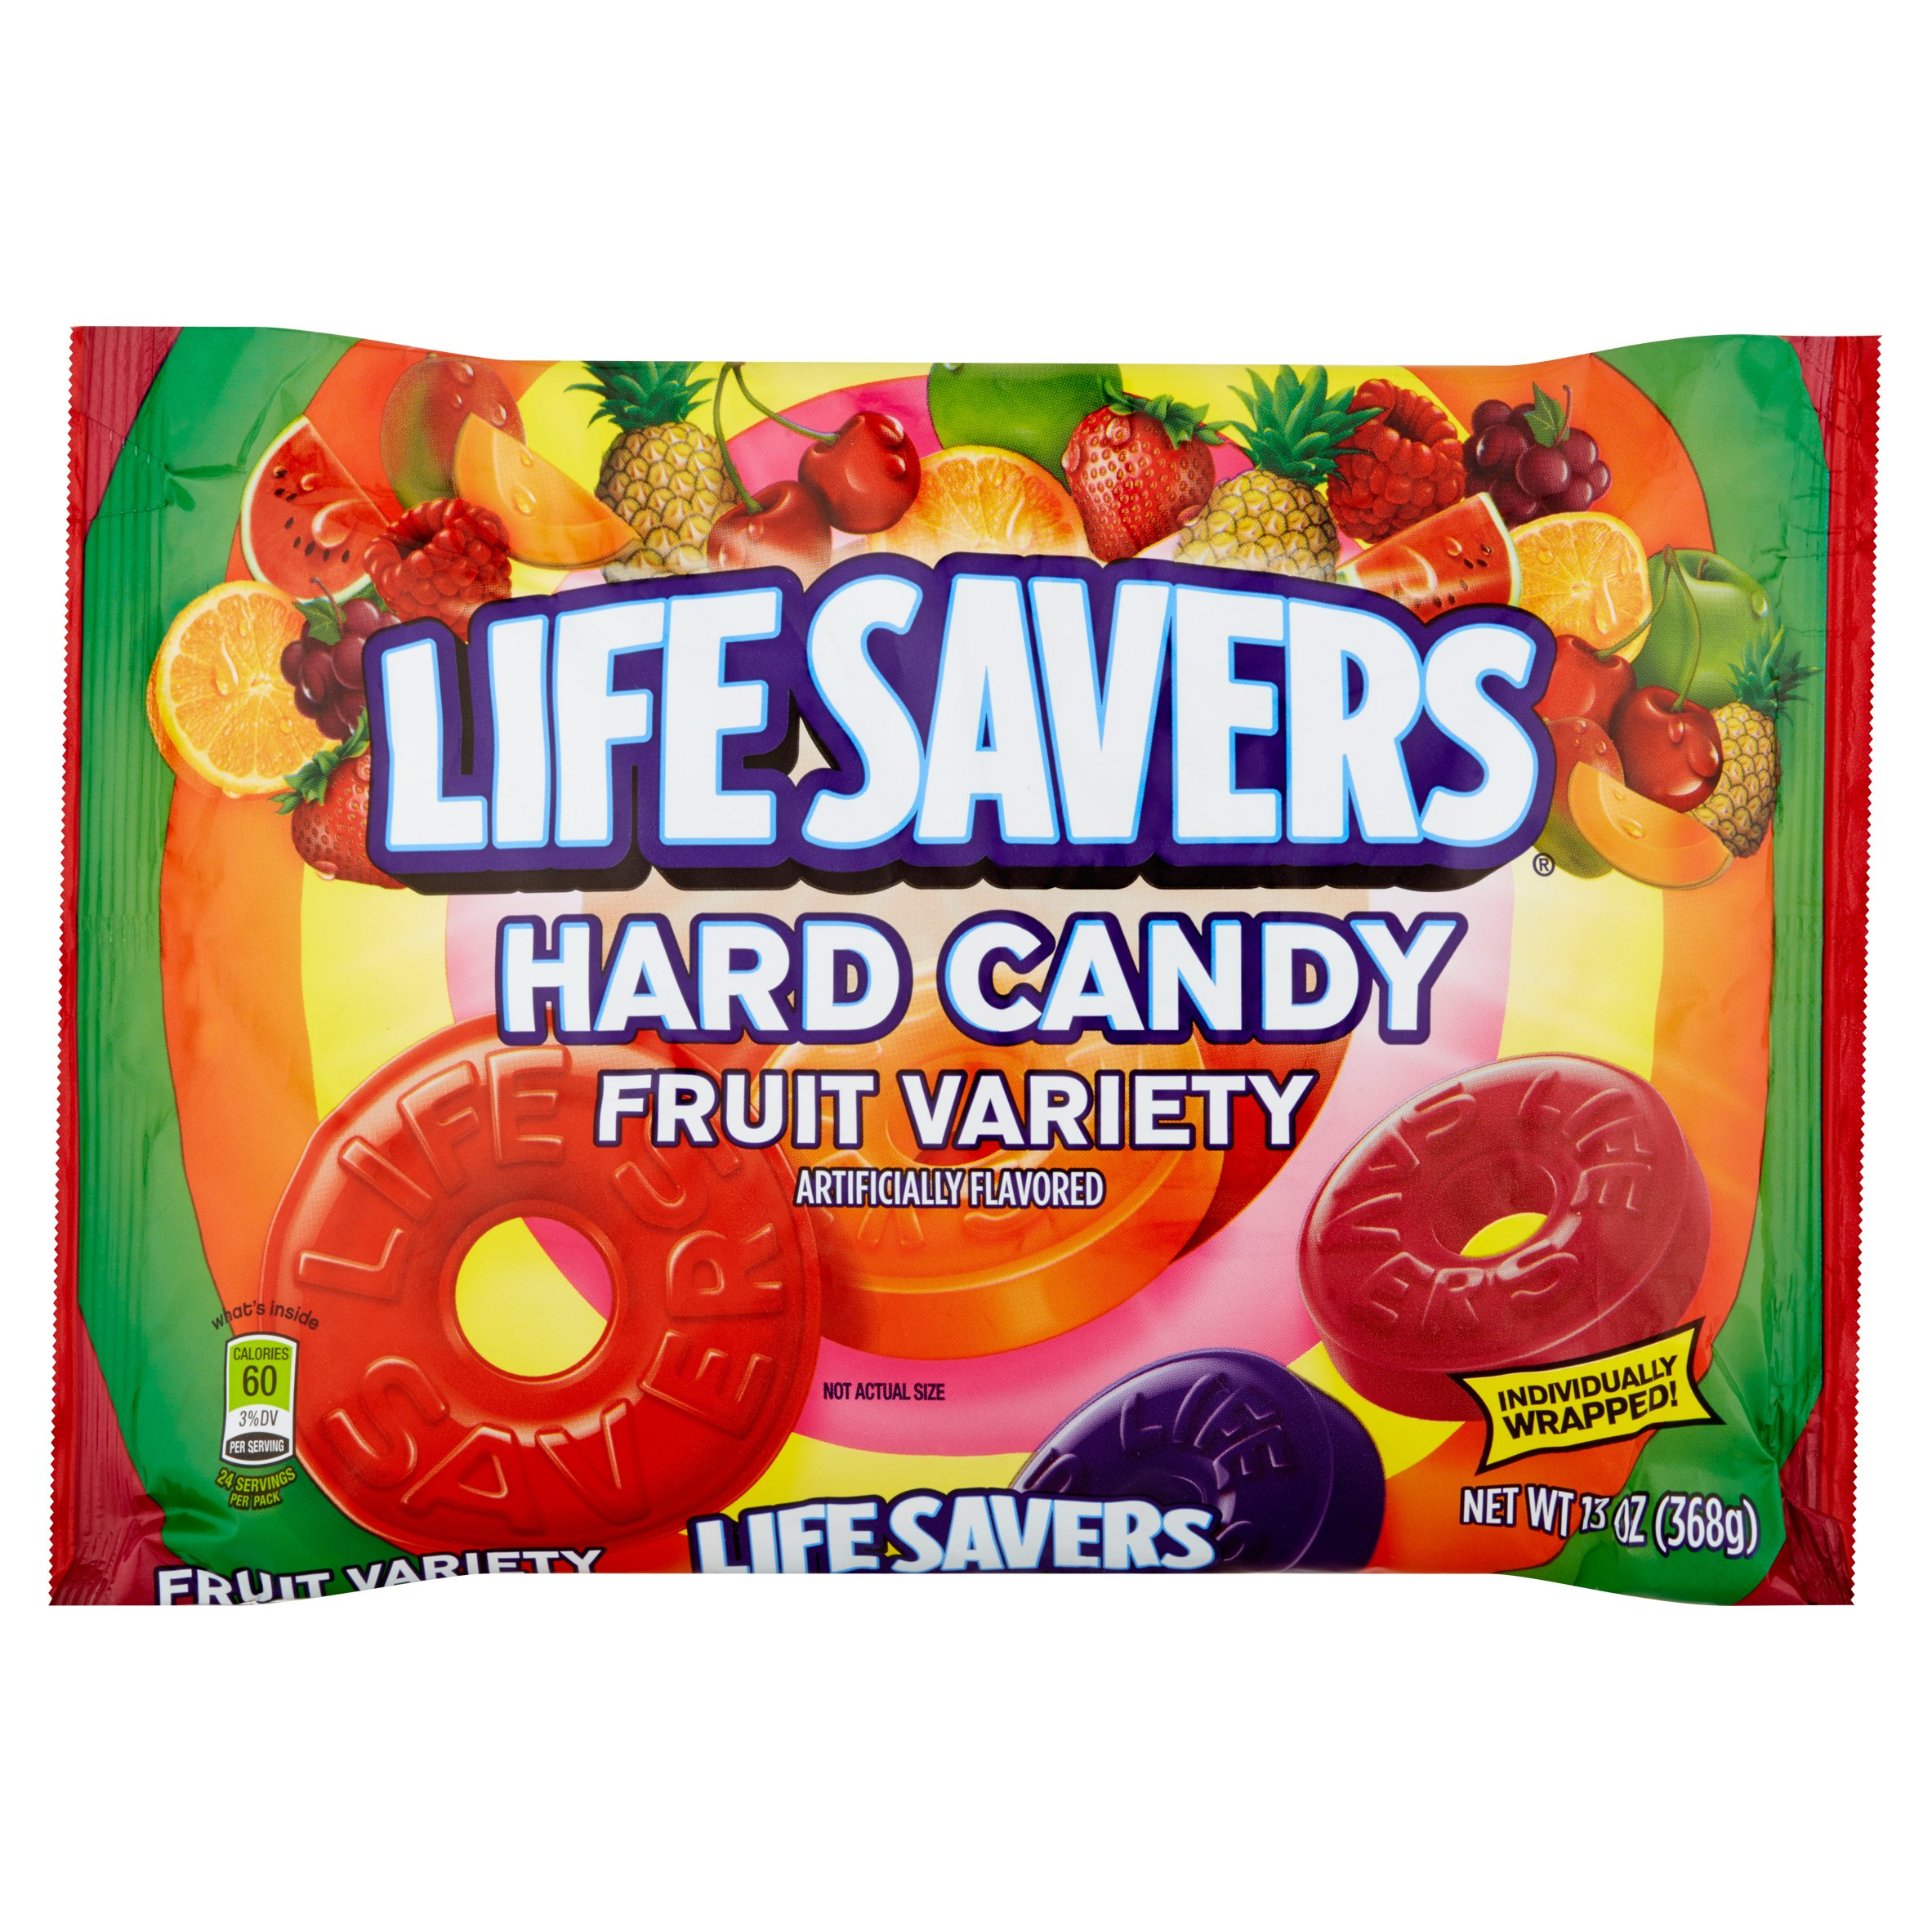 Life Savers Hard Candy Fruit Variety 13oz